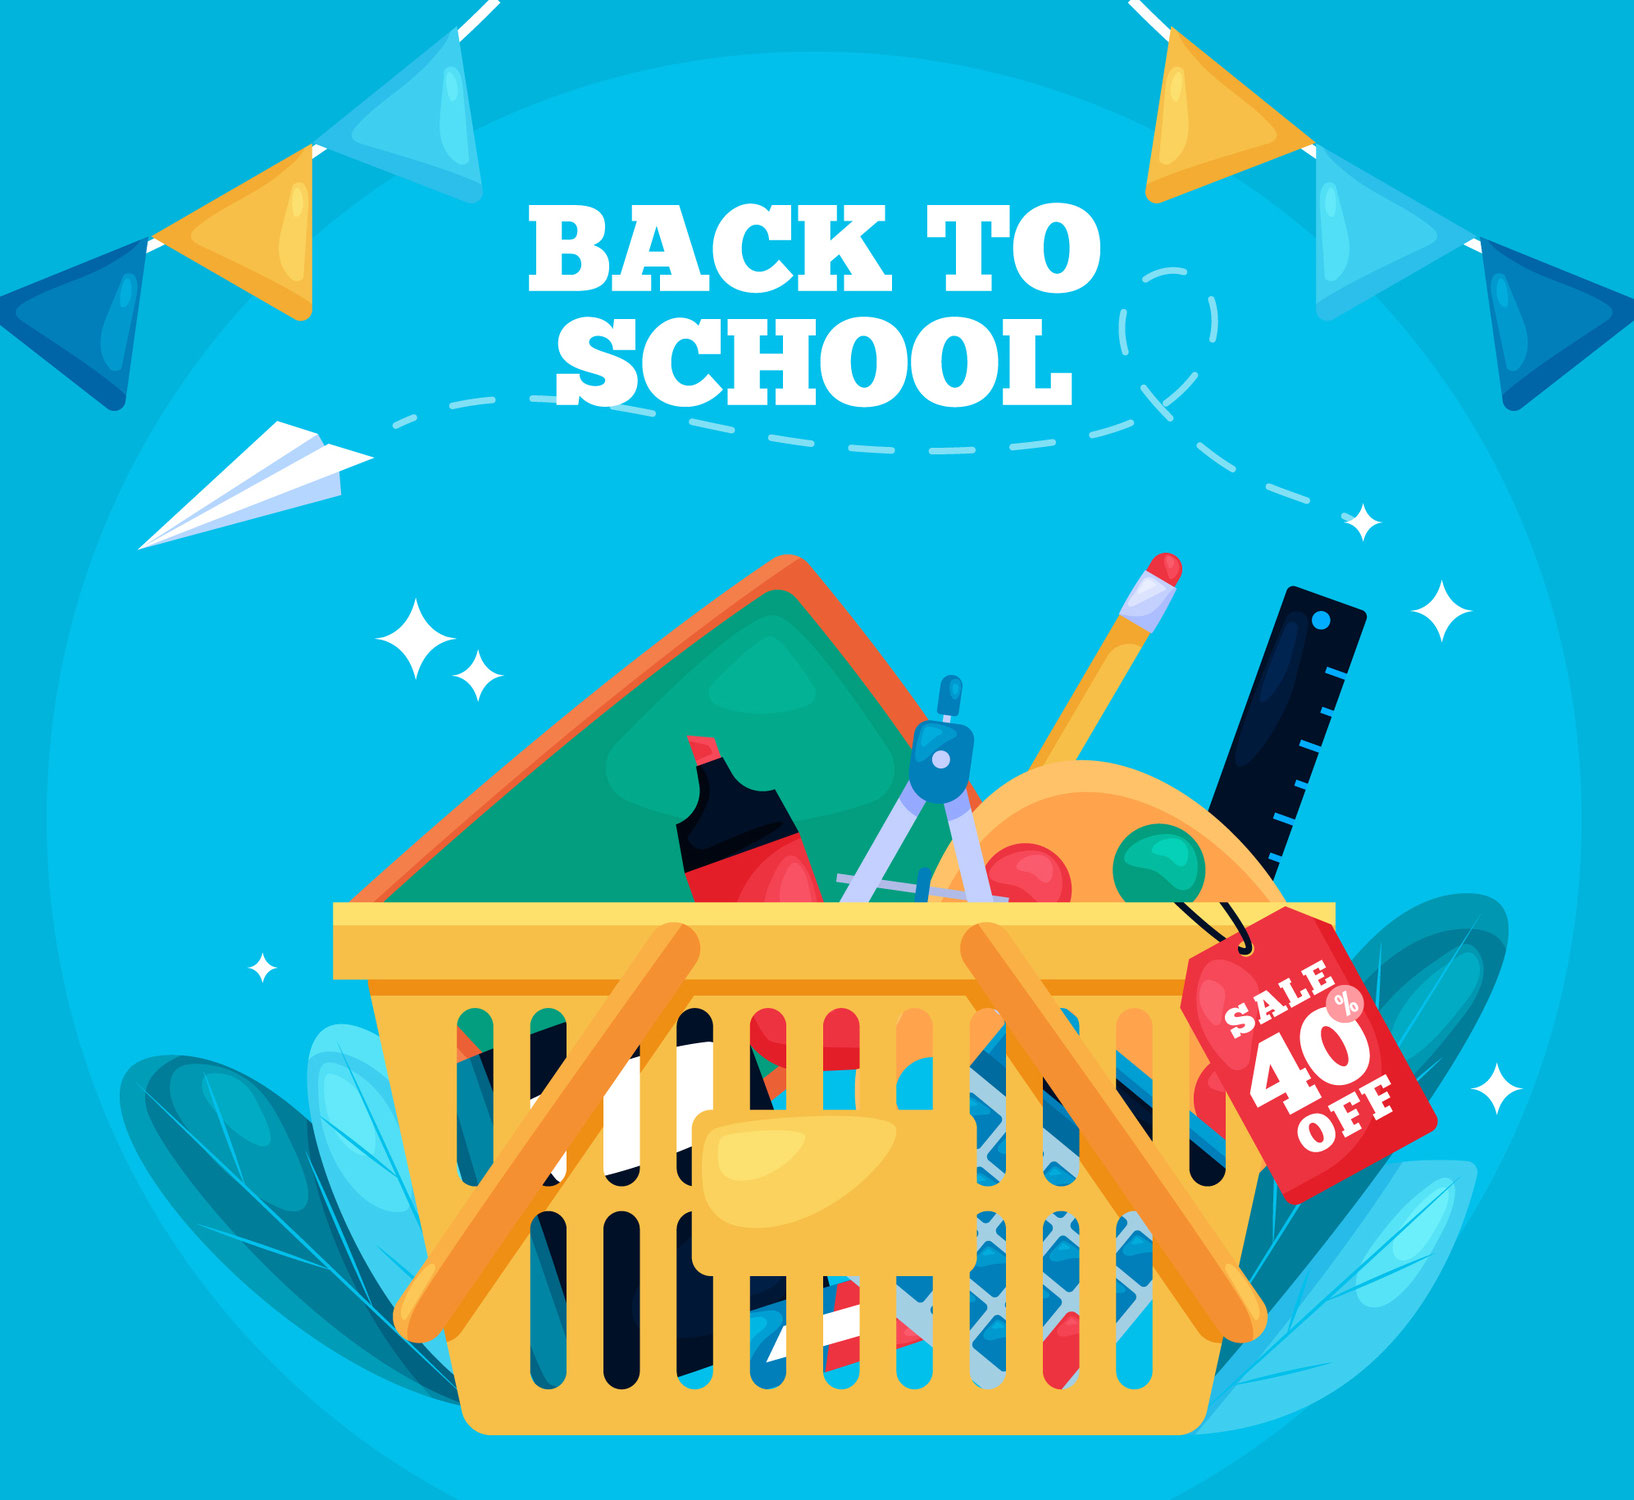 Back-to-School Shopping Looking Like a Win for Retail